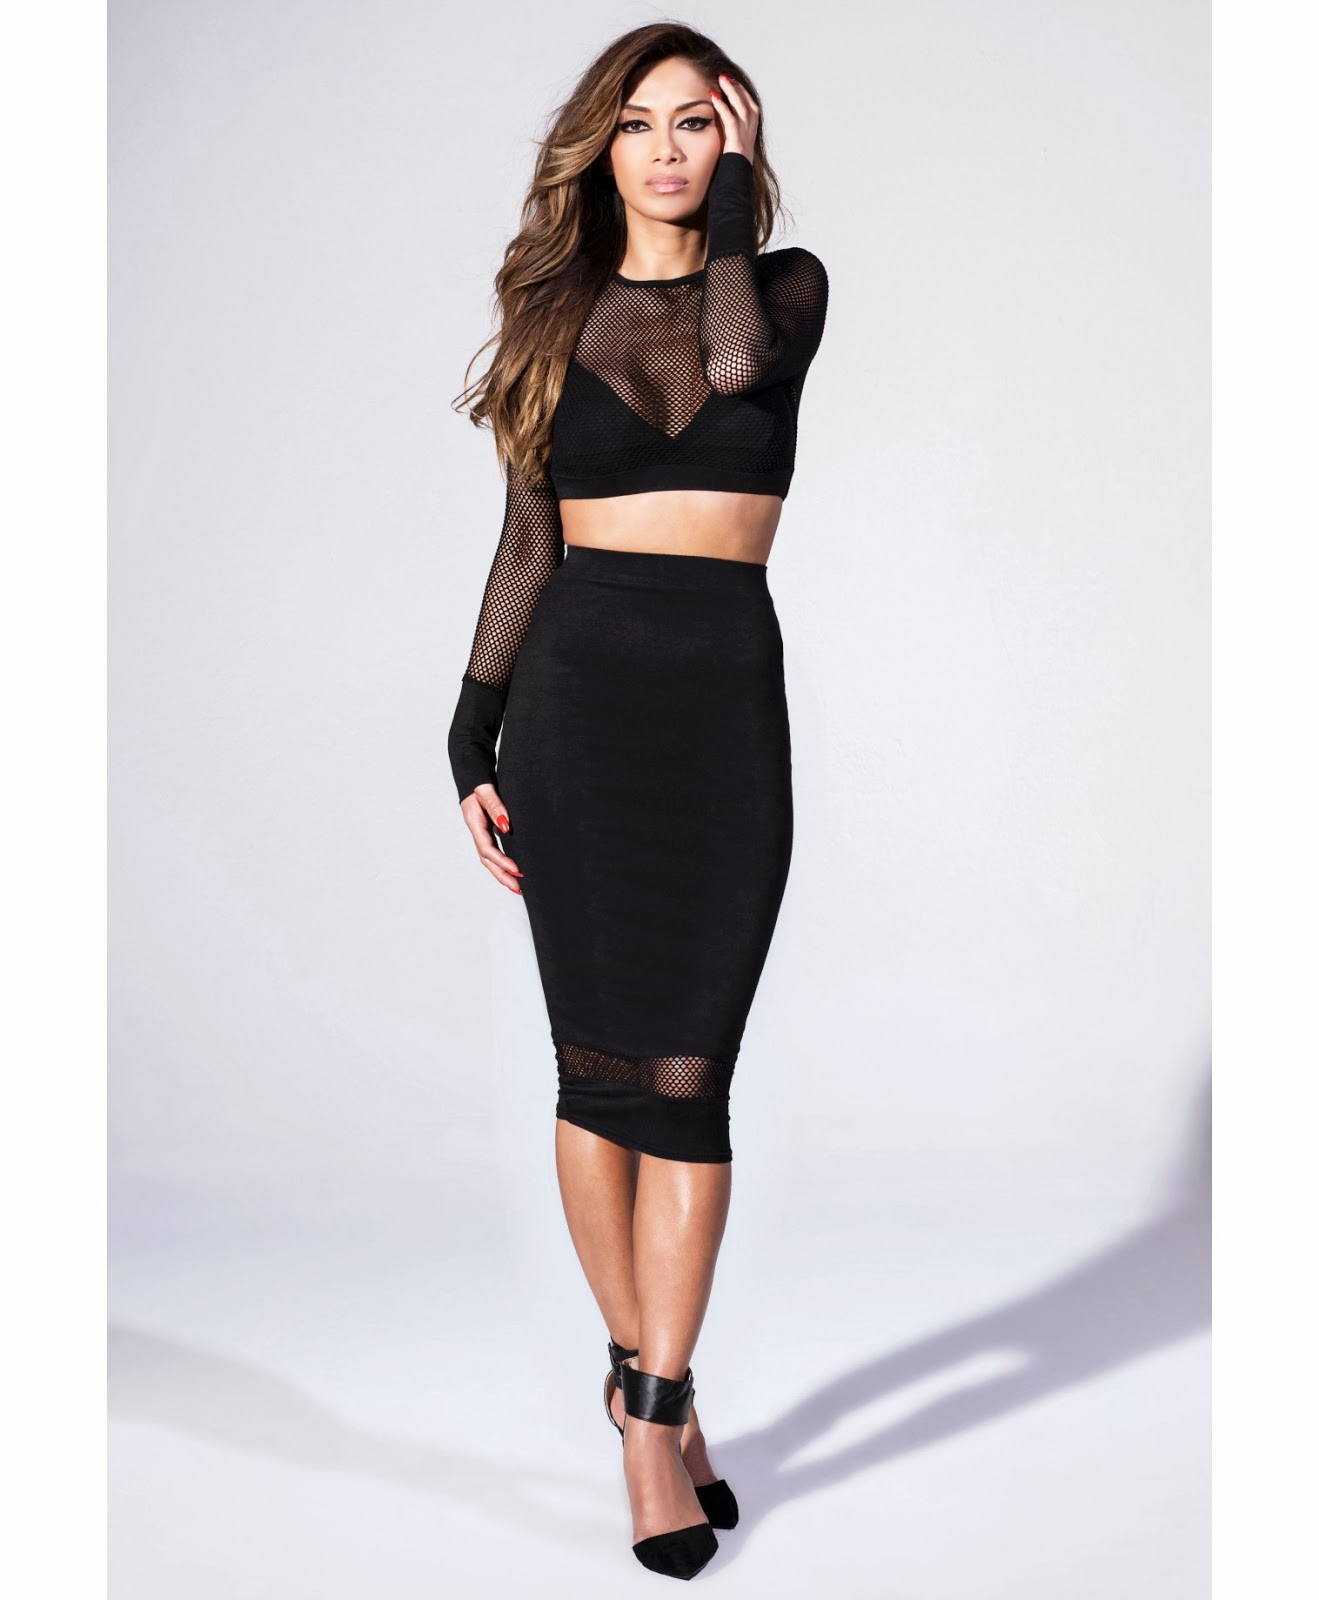 GlamorousGia lovin it the NicolexMissguided Long sleeve fishnet crop top in black and Black midi skirt with fishnet hem detail.